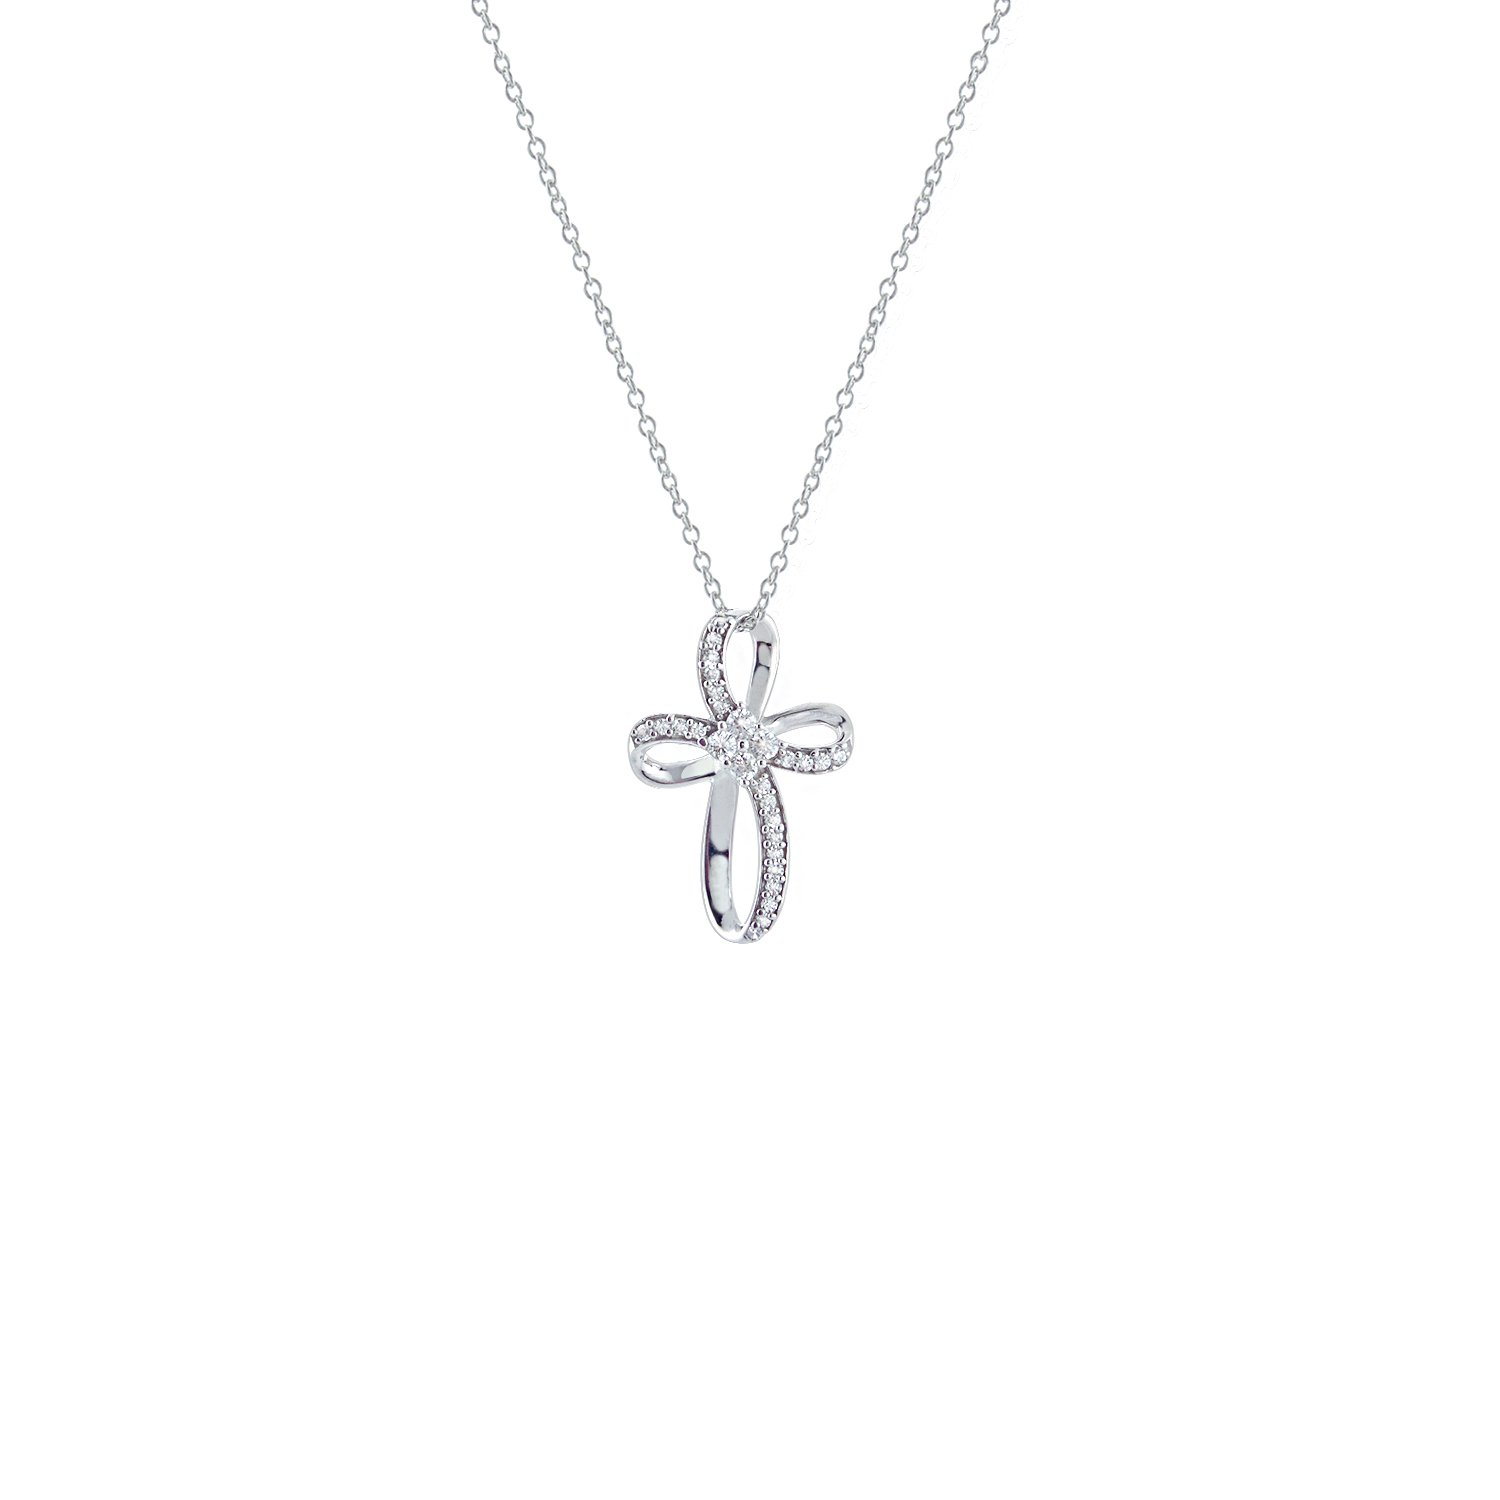 DiscountHouse4you Round Cut 0.25 Ct White Gold Finish 925 Sterling Silver Infinity Cross Pendant Necklace 18 Chain for Easter